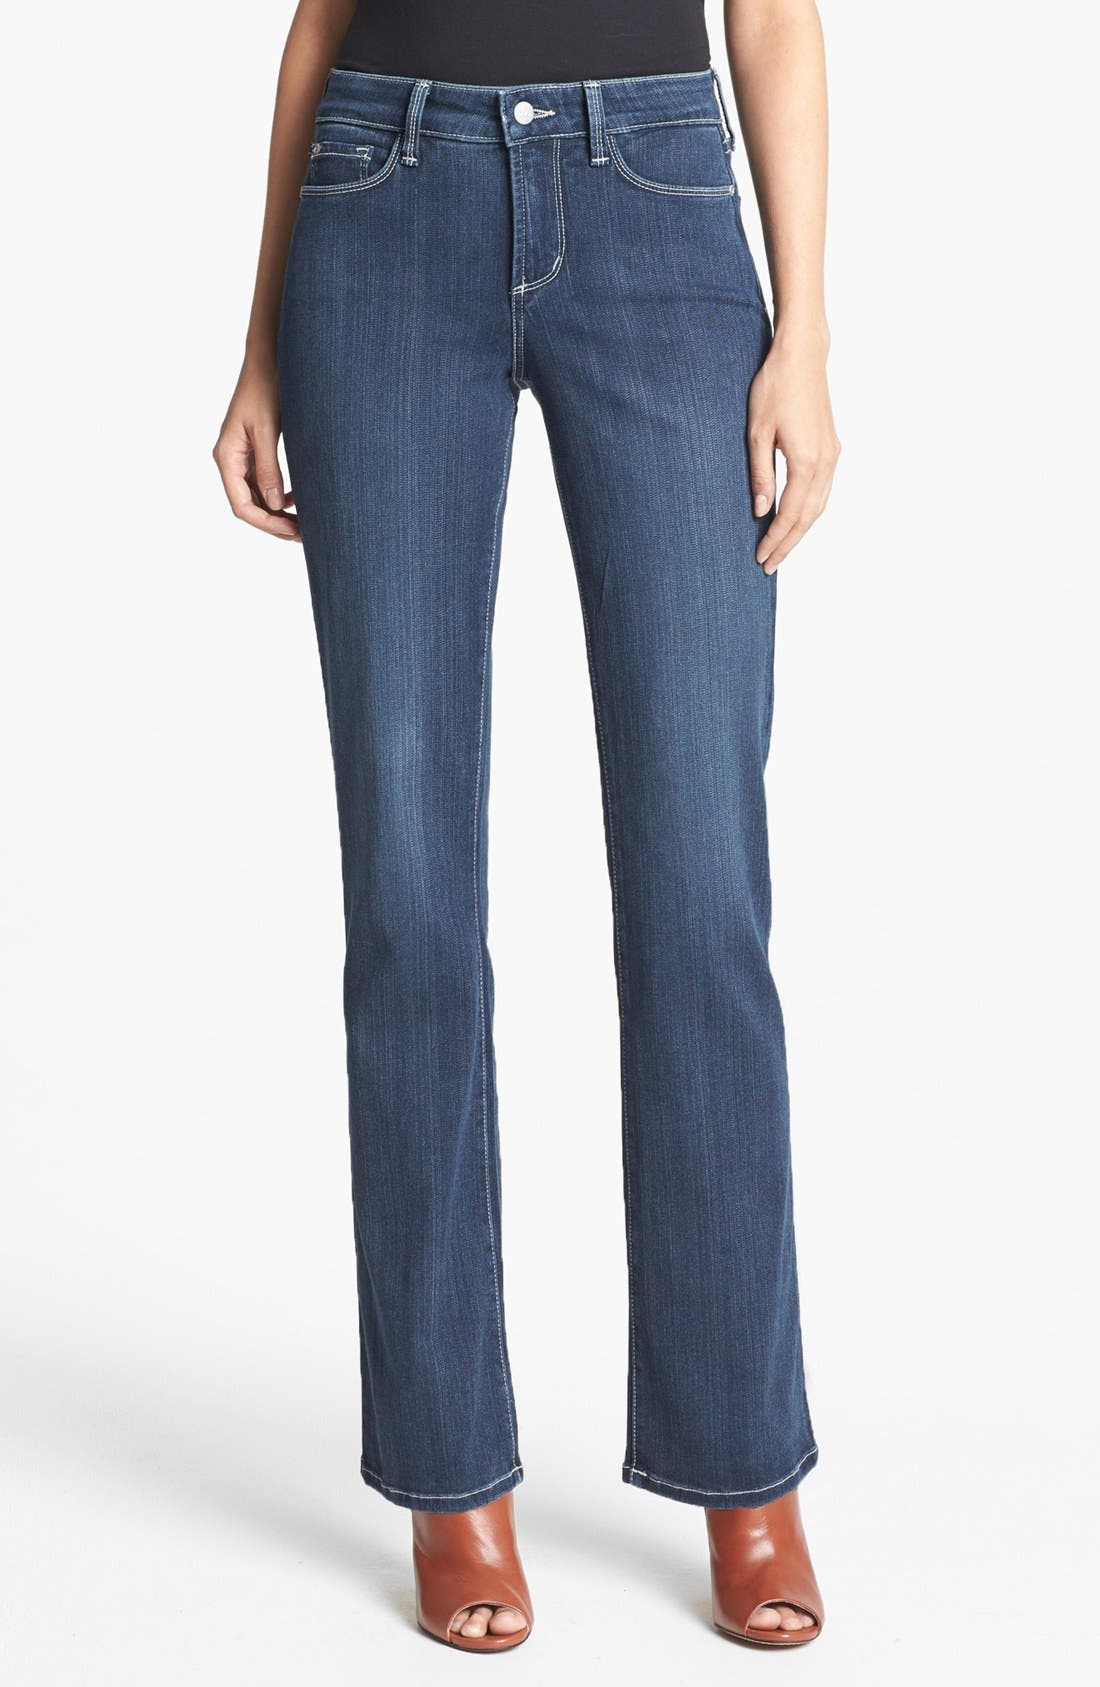 Alternate Image 1 Selected - NYDJ 'Barbara' Stretch Bootcut Jeans (Coral Sea)